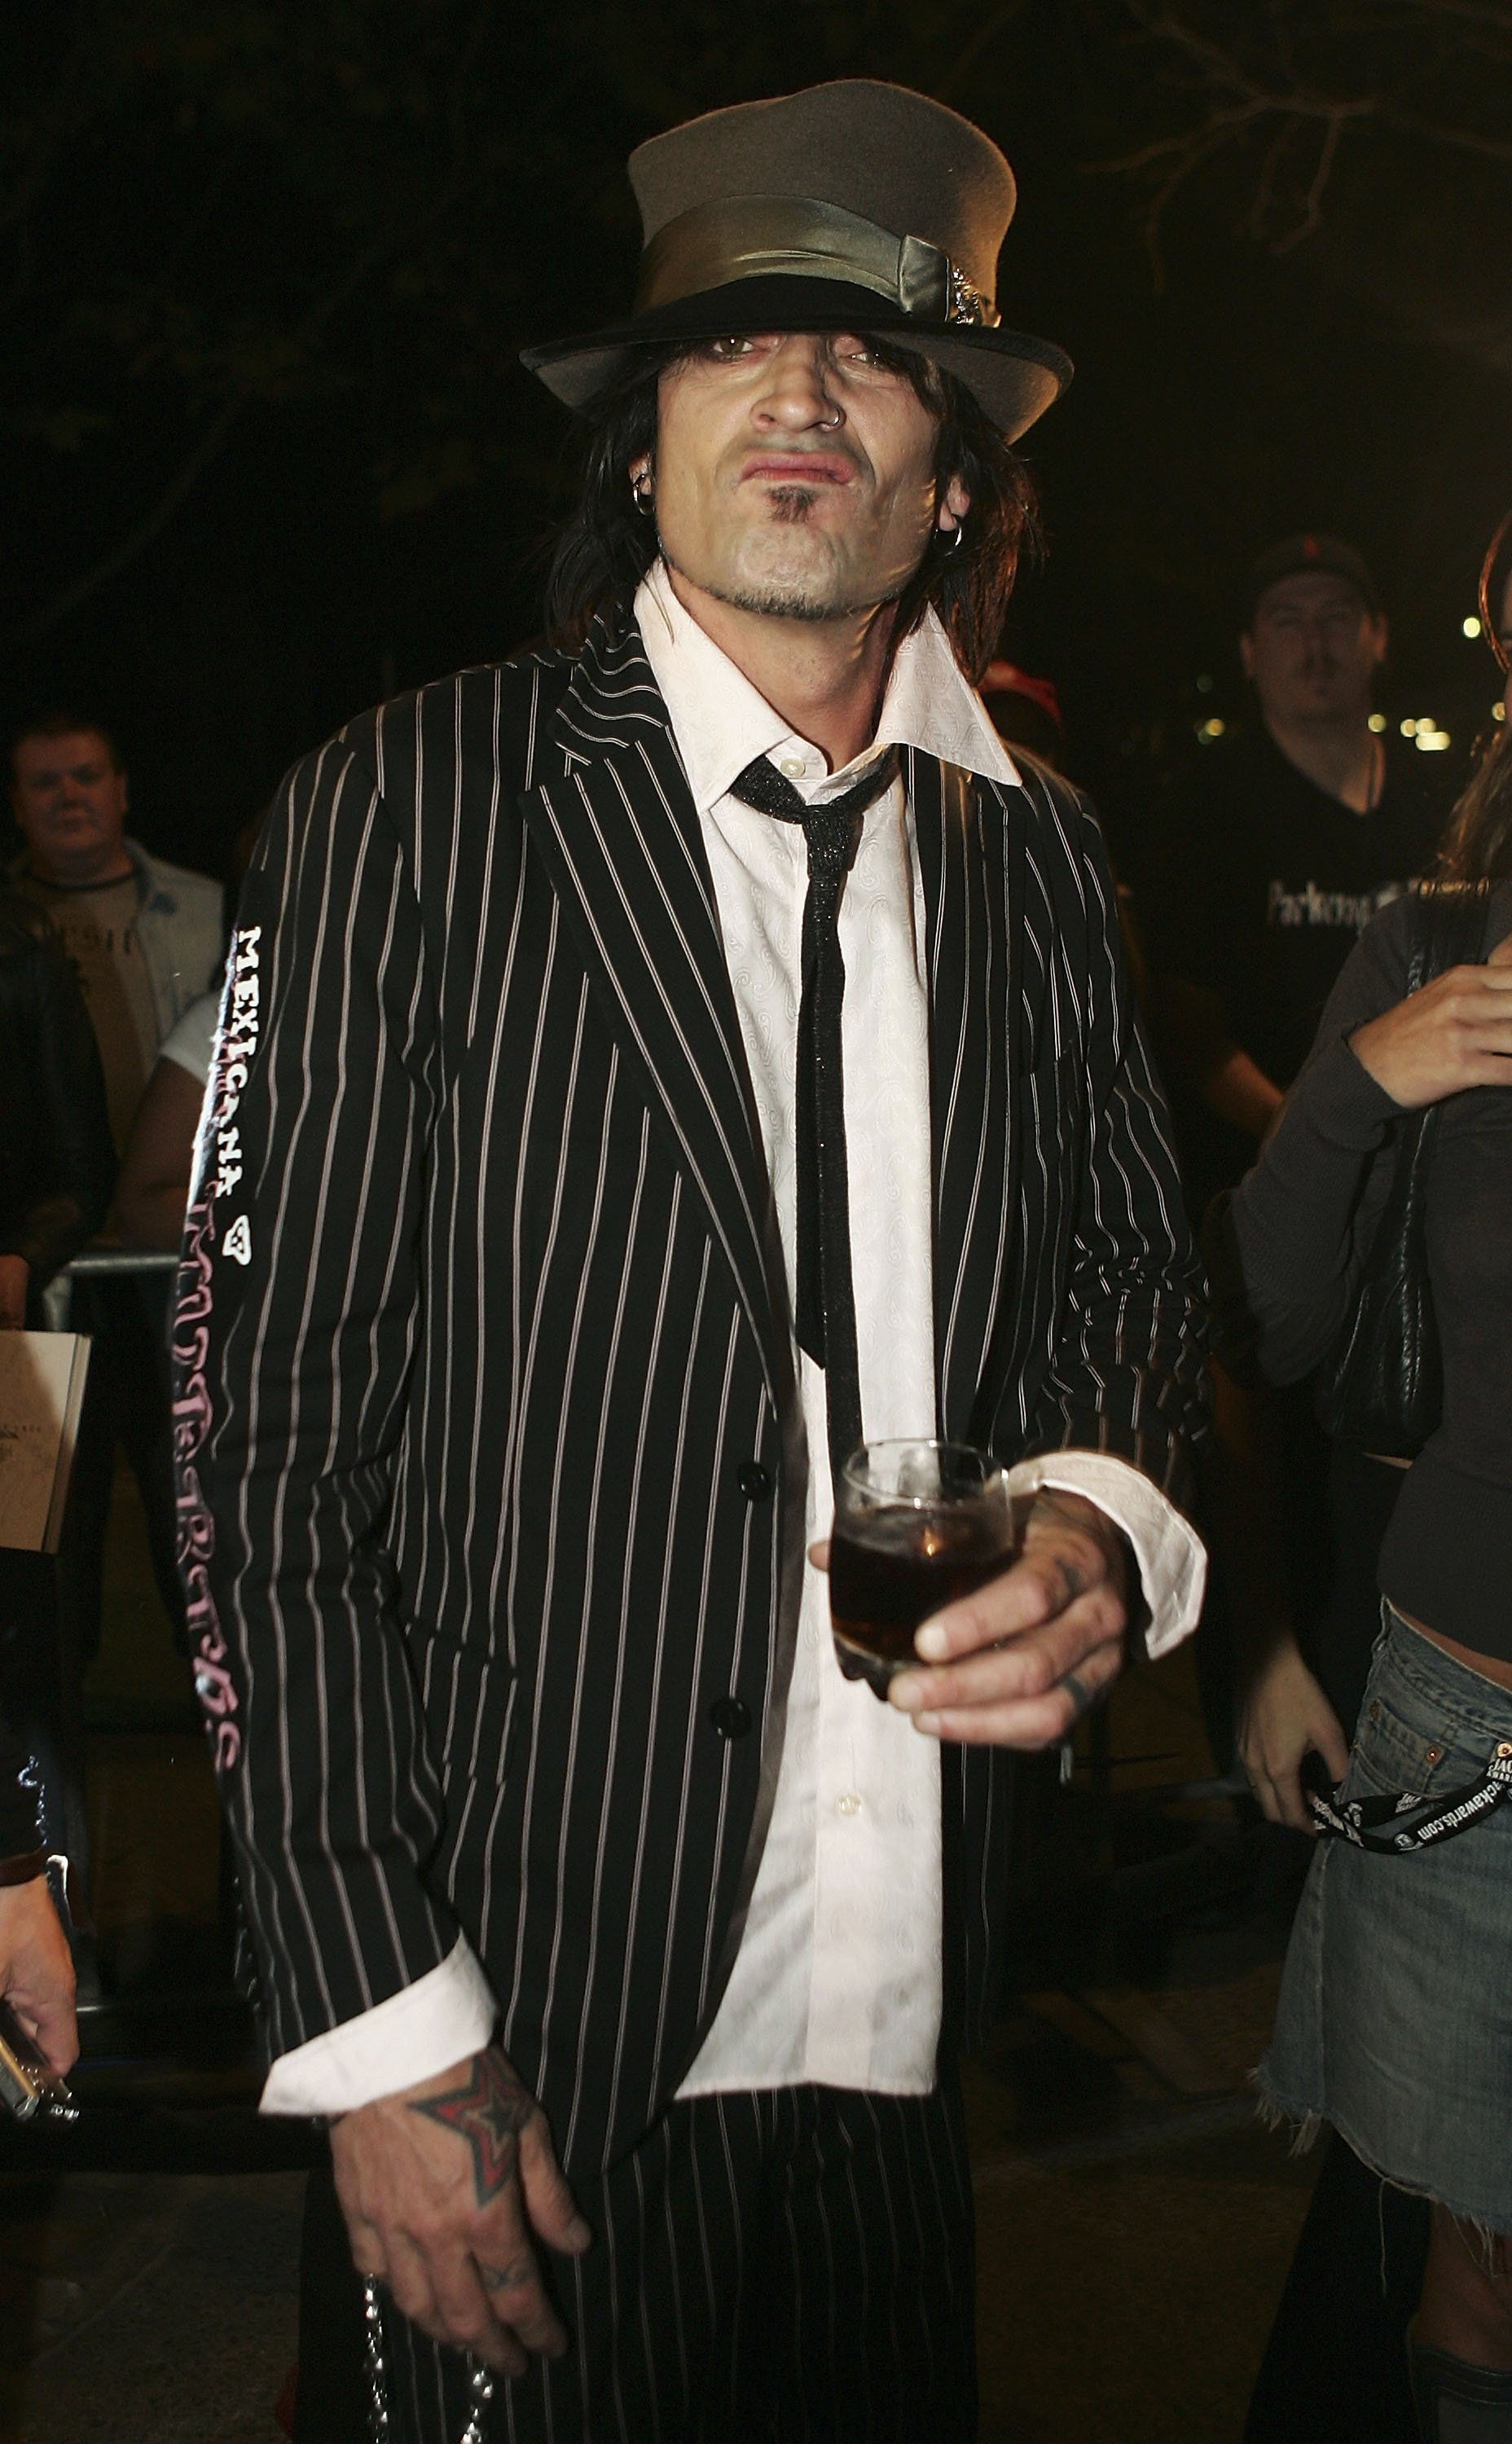 Tommy Lee of Motley Crue arrives at the 2nd Jack Awards Ceremony at the Seymour Center on May 10, 2005 in Sydney, Australia | Photo: GettyImages